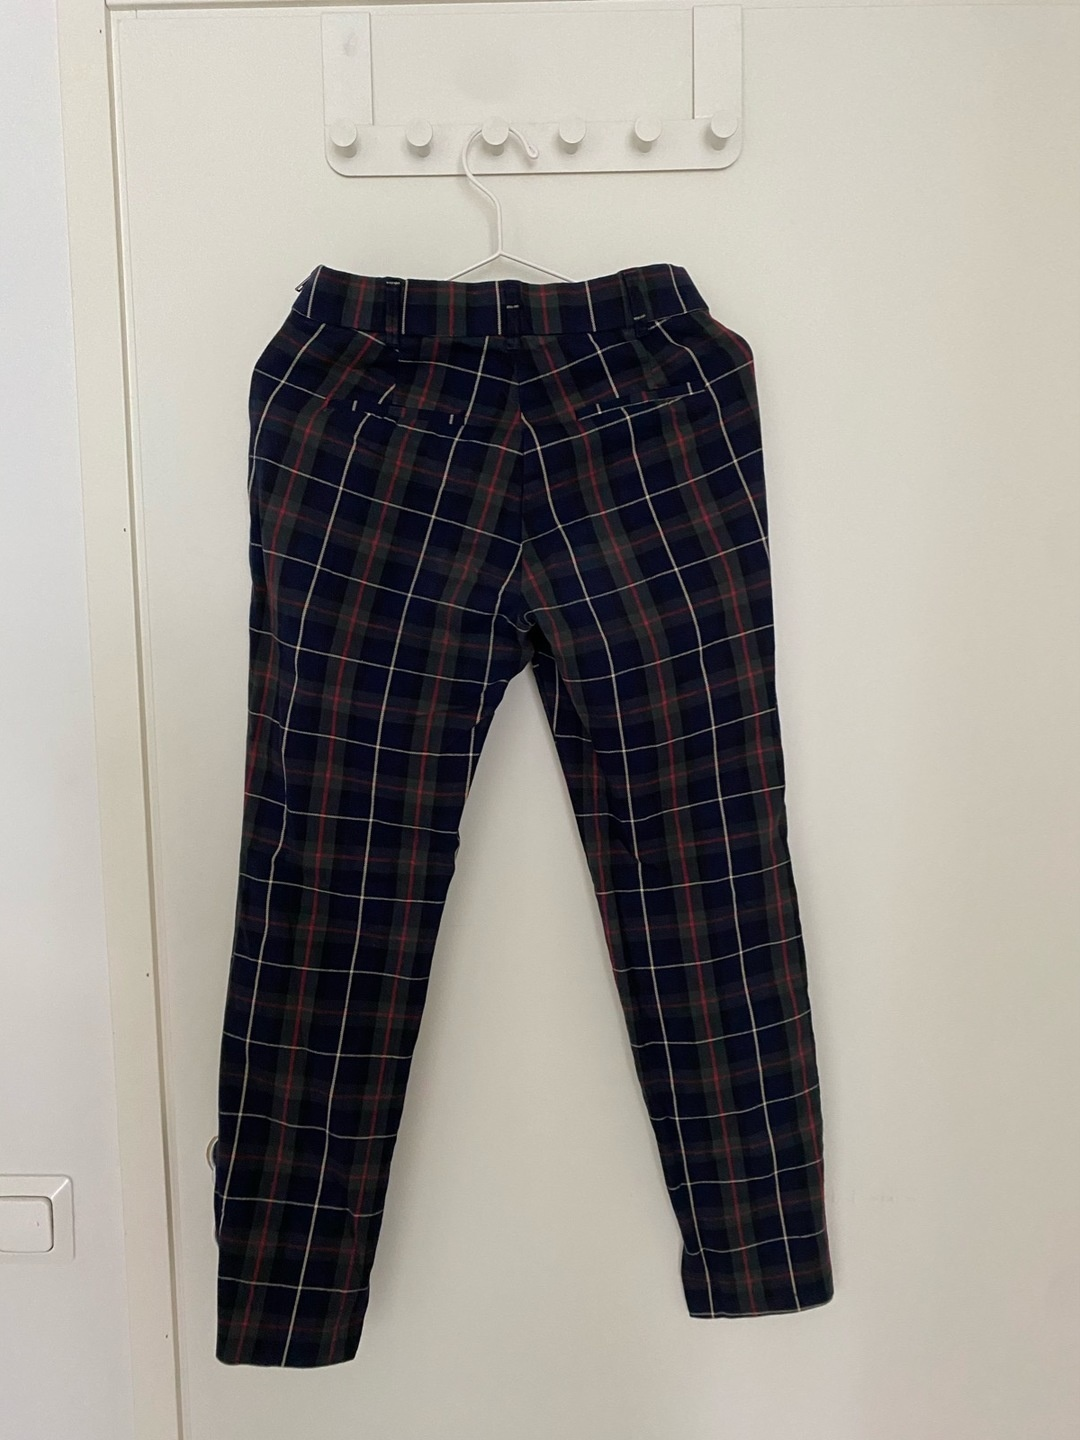 Women's trousers & jeans - ZARA photo 4